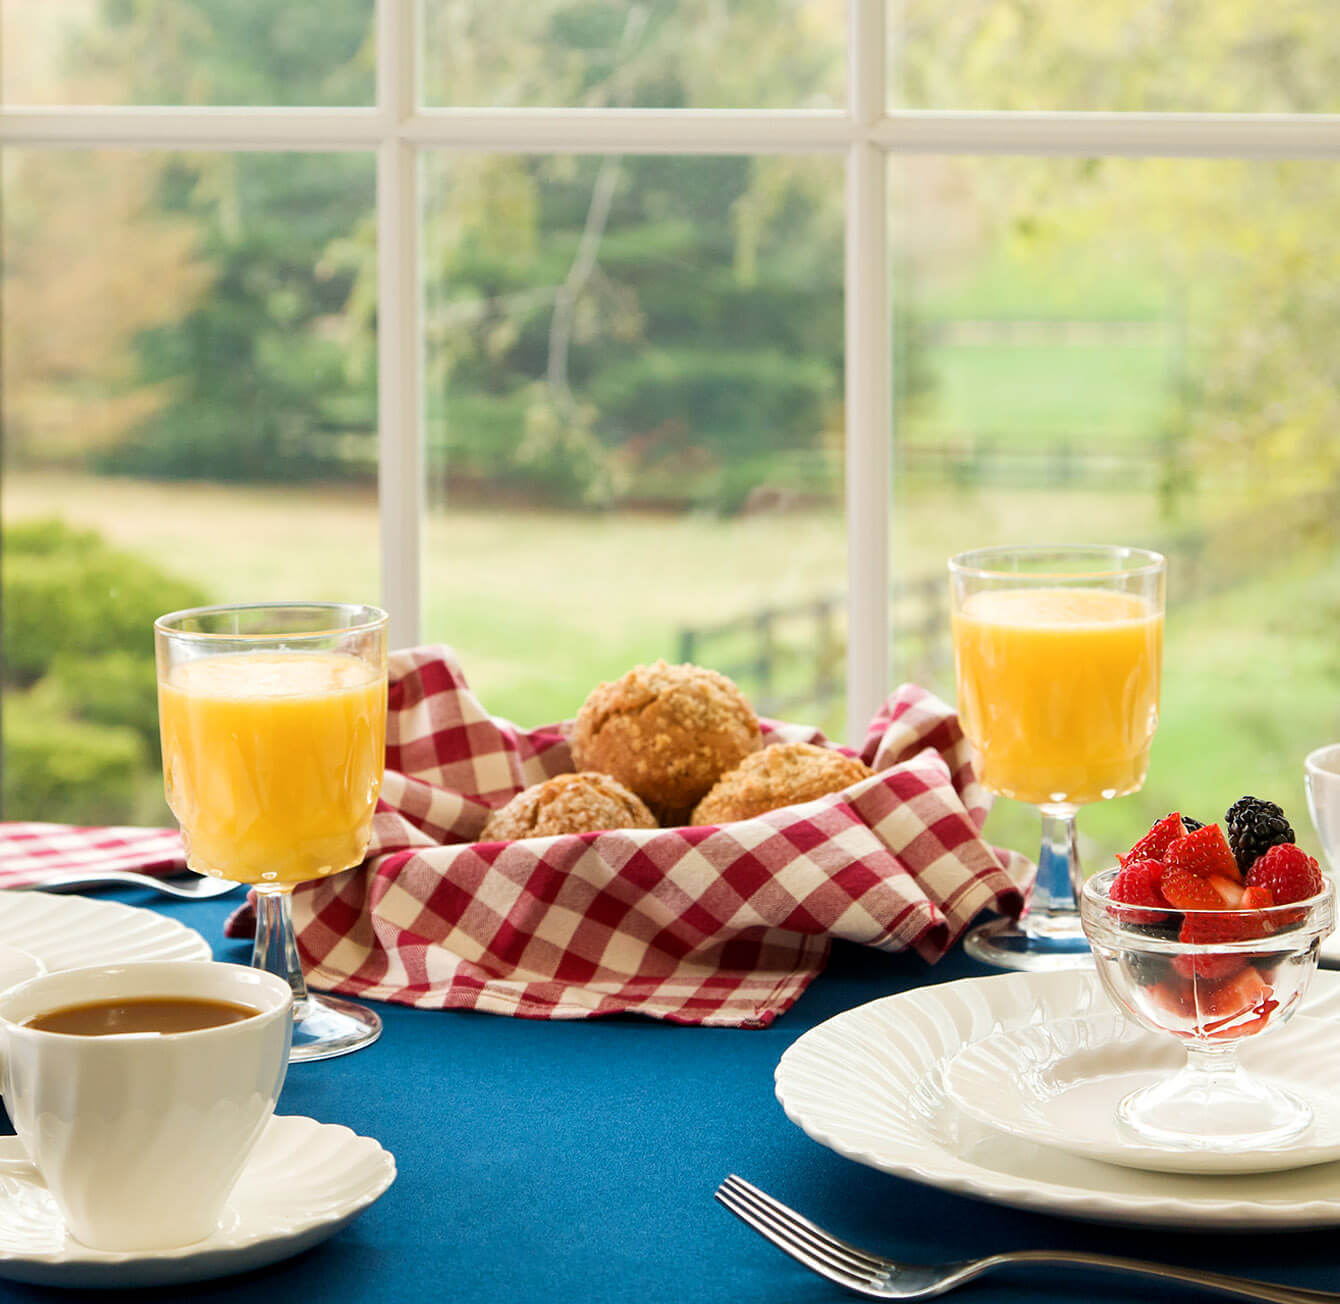 quaint bed and breakfast table with juice and muffins